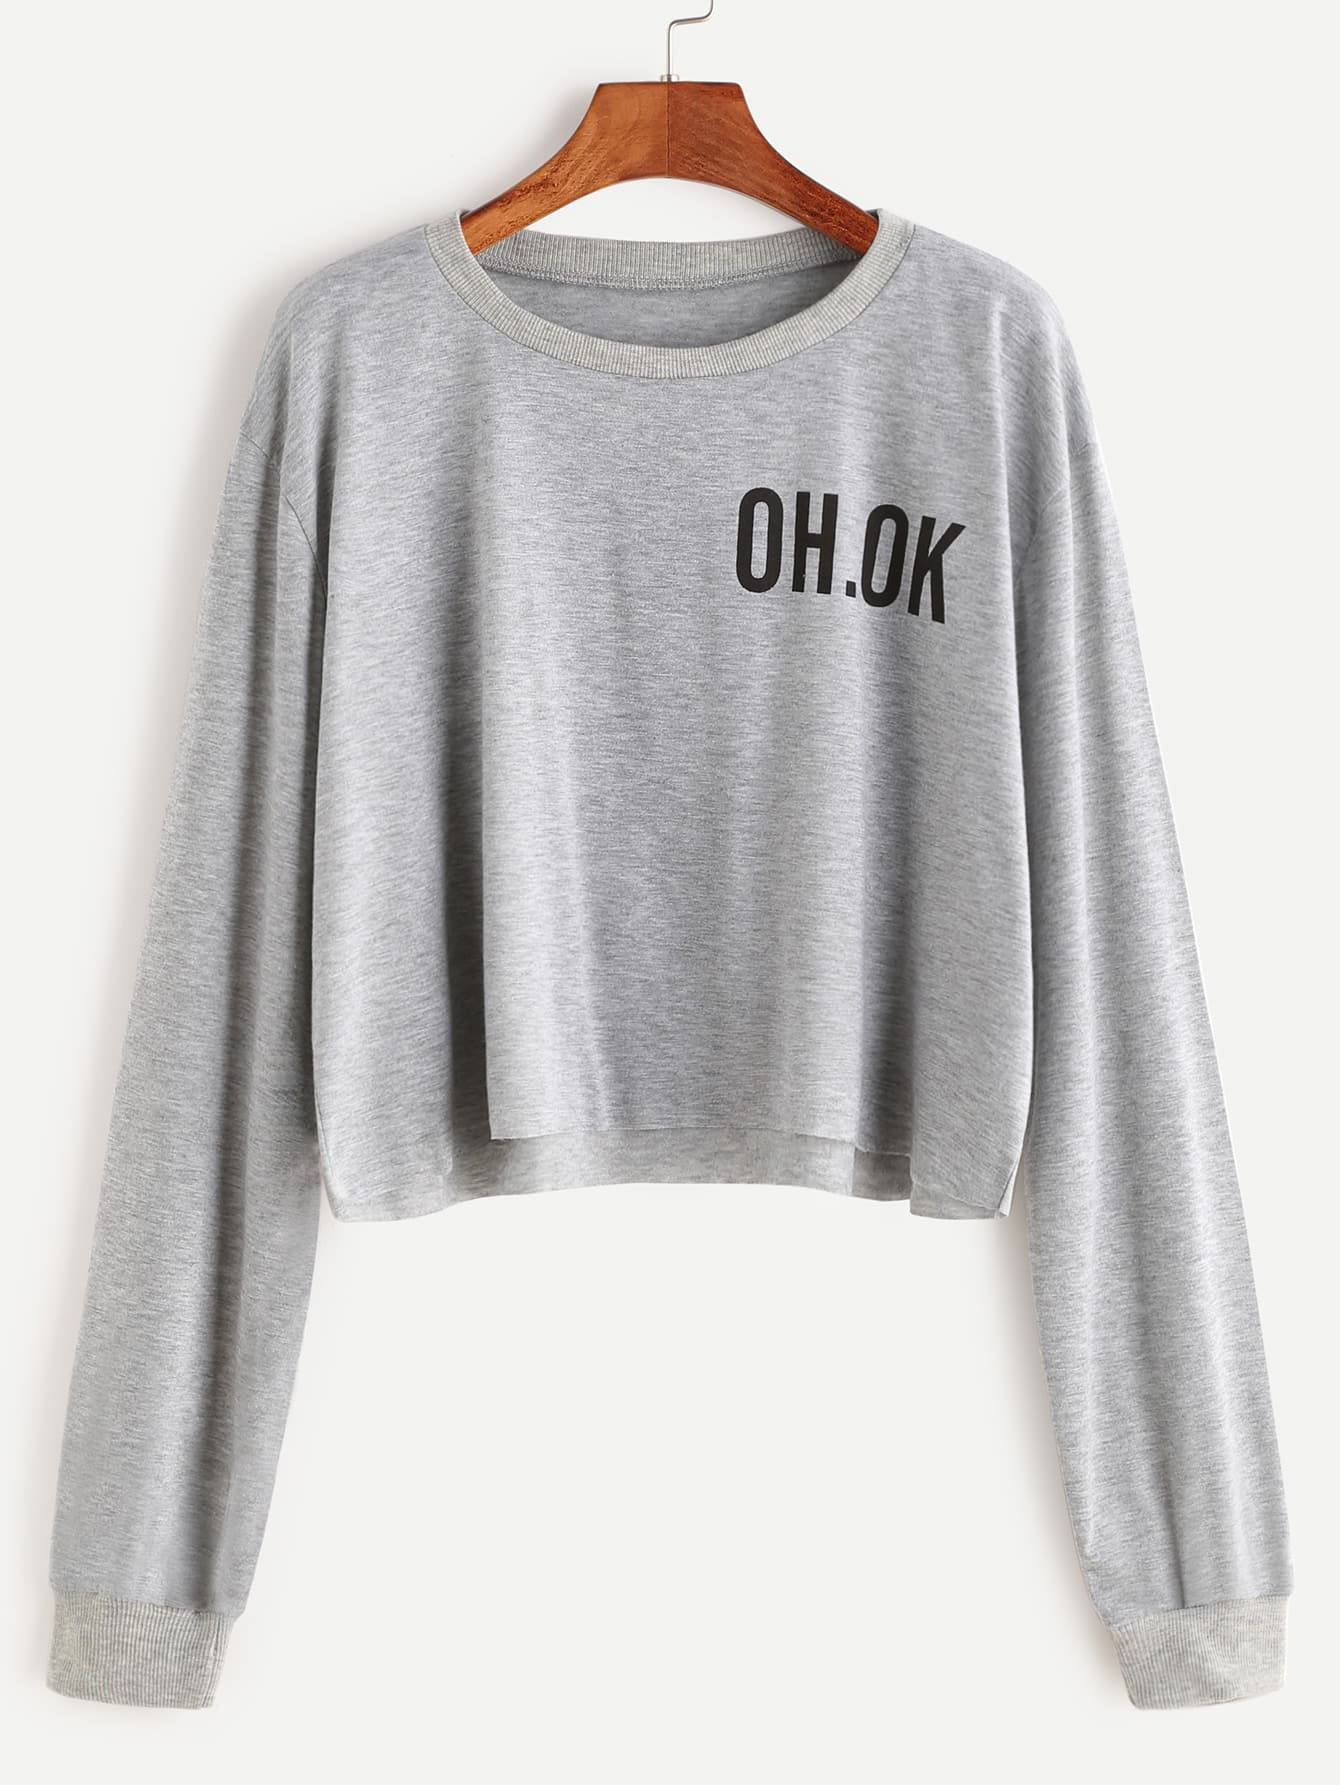 Grey Drop Shoulder Letter Print Raw Hem Crop Sweatshirt sweatshirt161229003